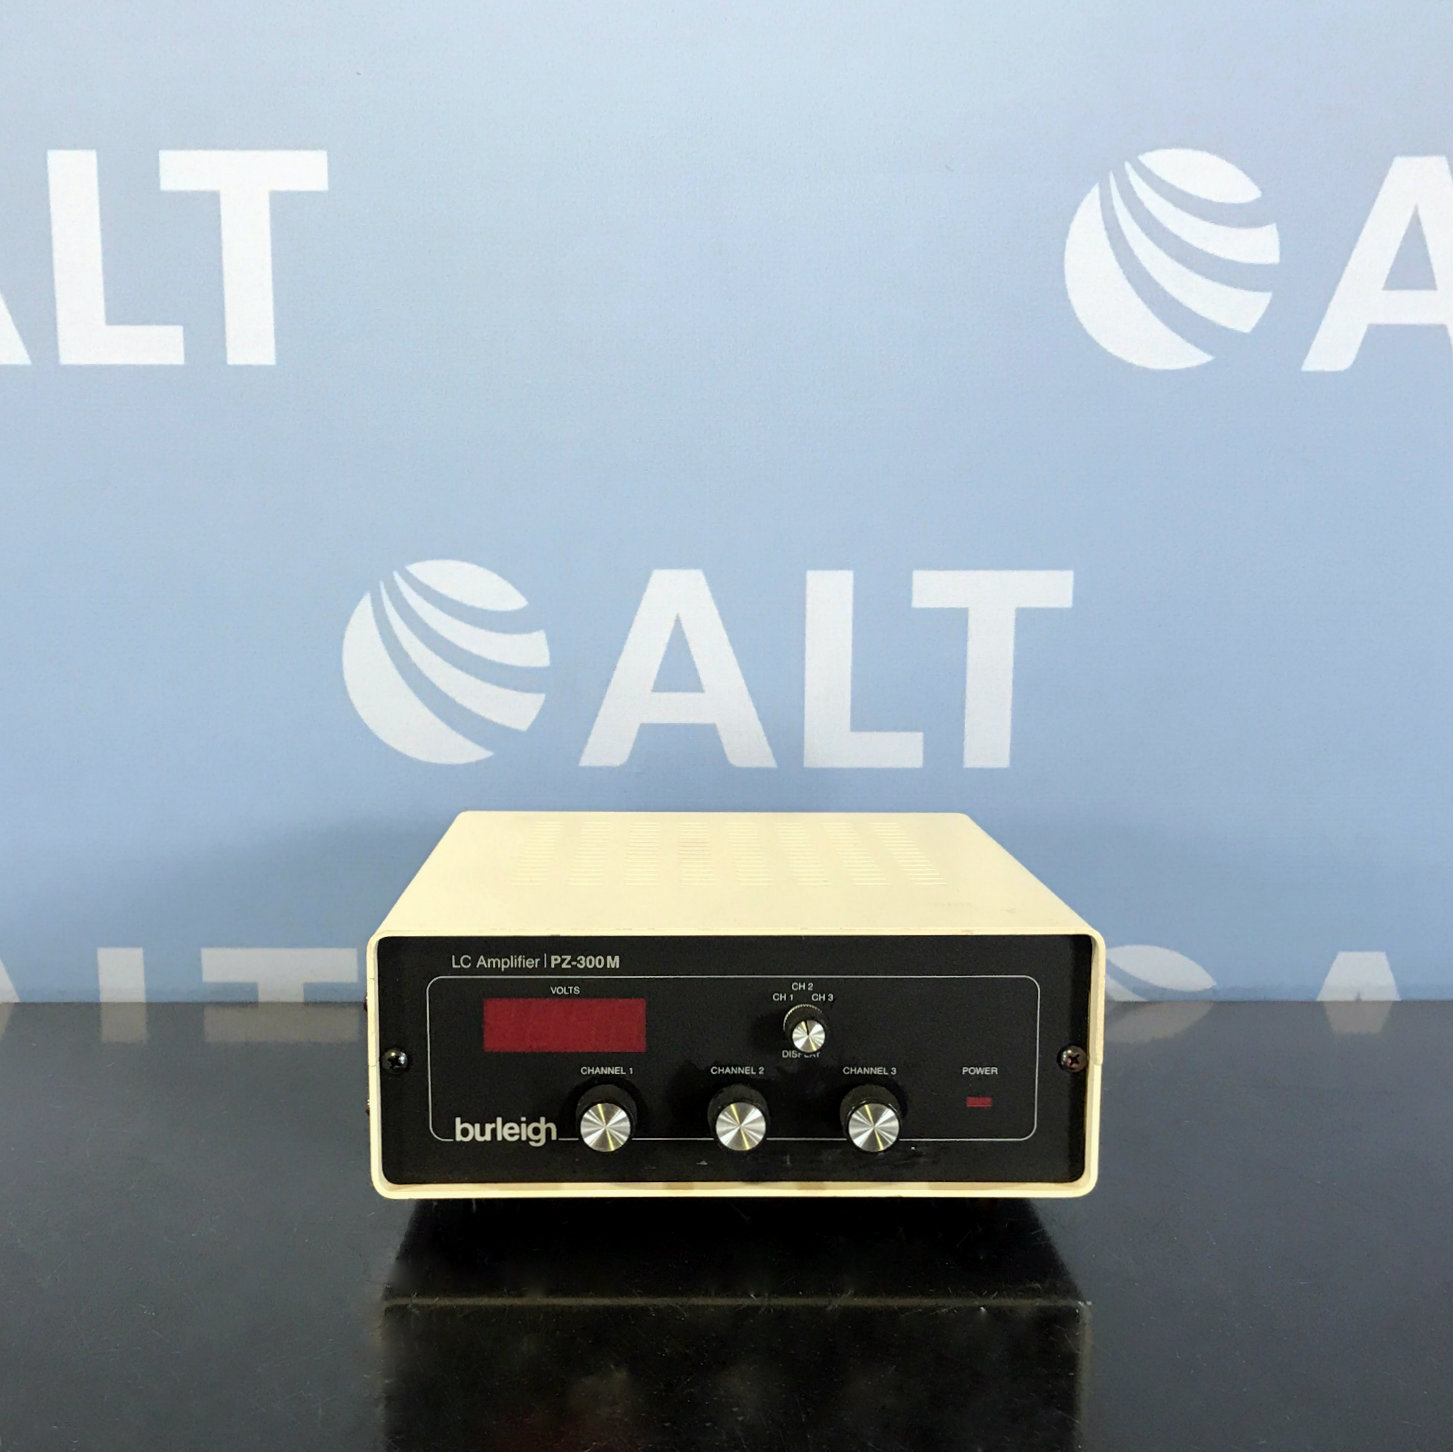 Burleigh Pz-300m 3 Channel LC Amplifier Image